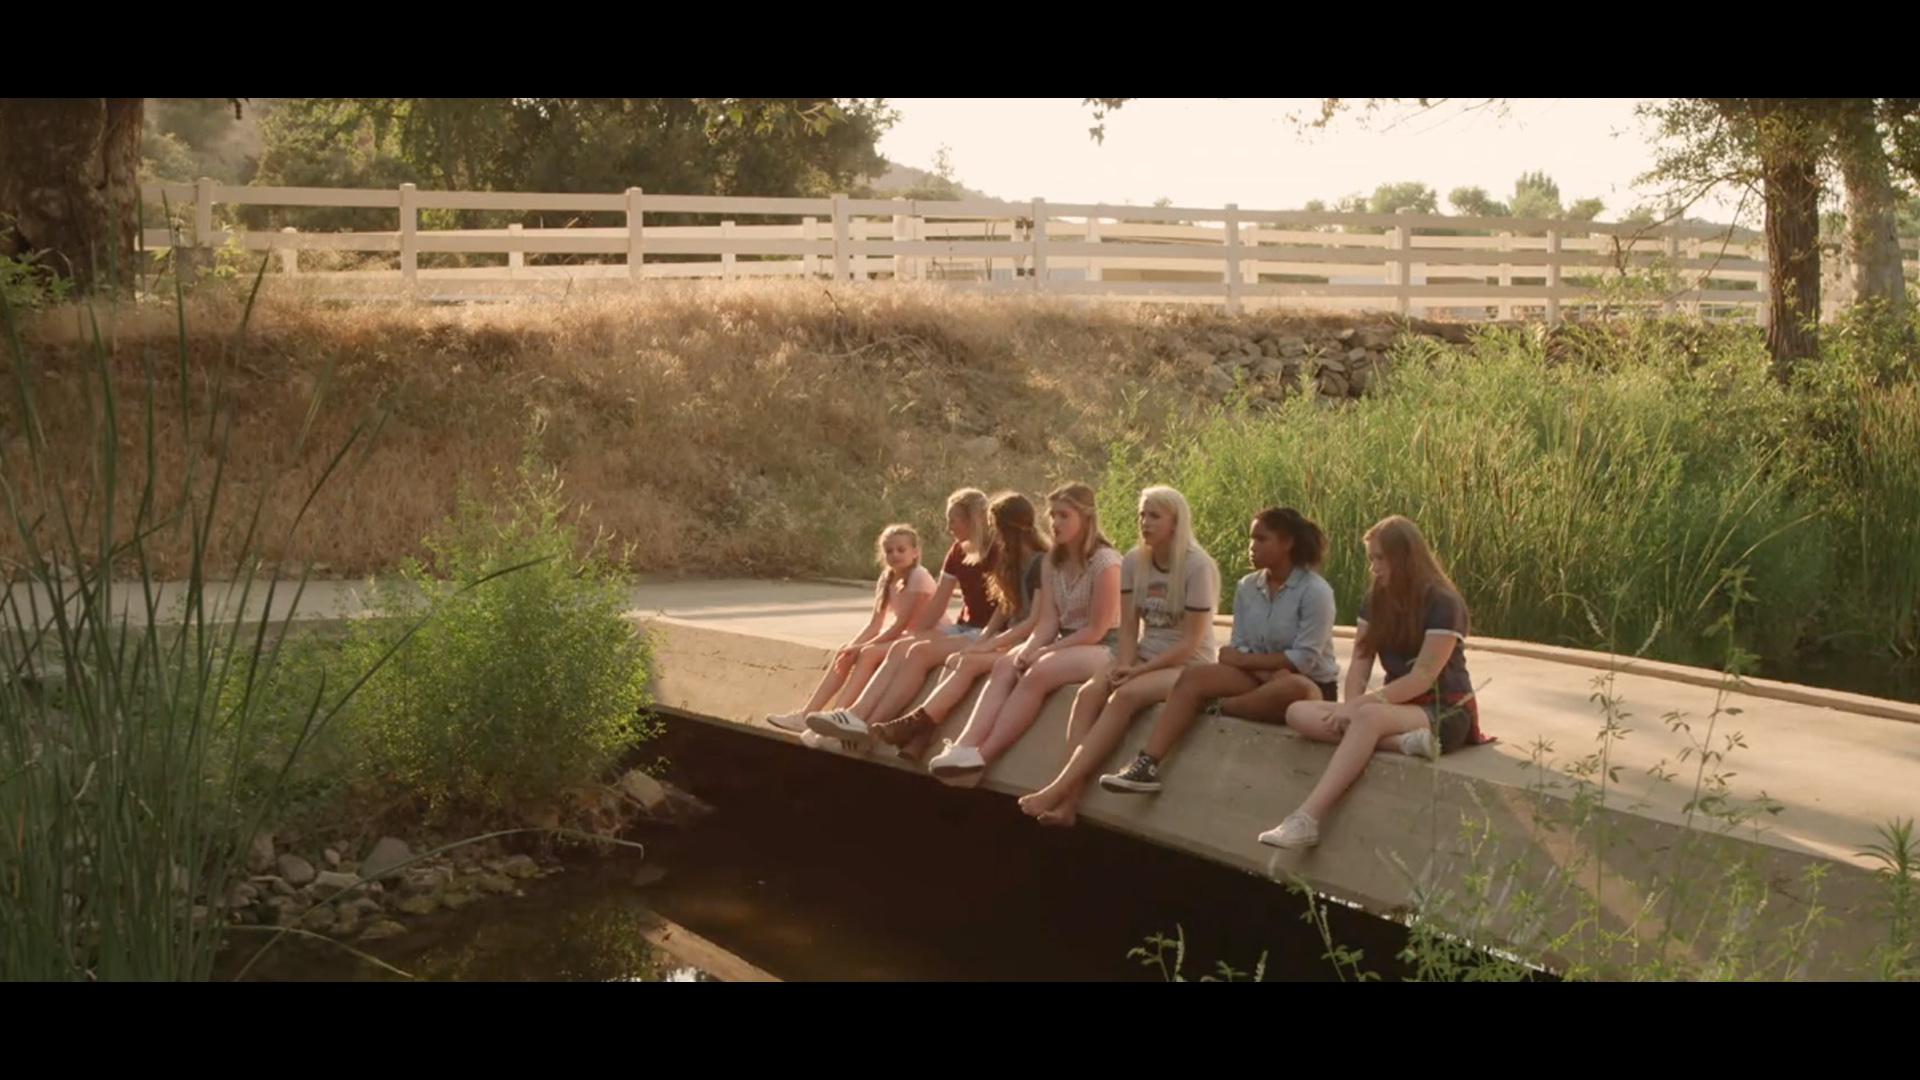 Reasons to live  (2017) -Producer-  In the wake of the recent passing of a friend, a group of girls come together in the aftermath.